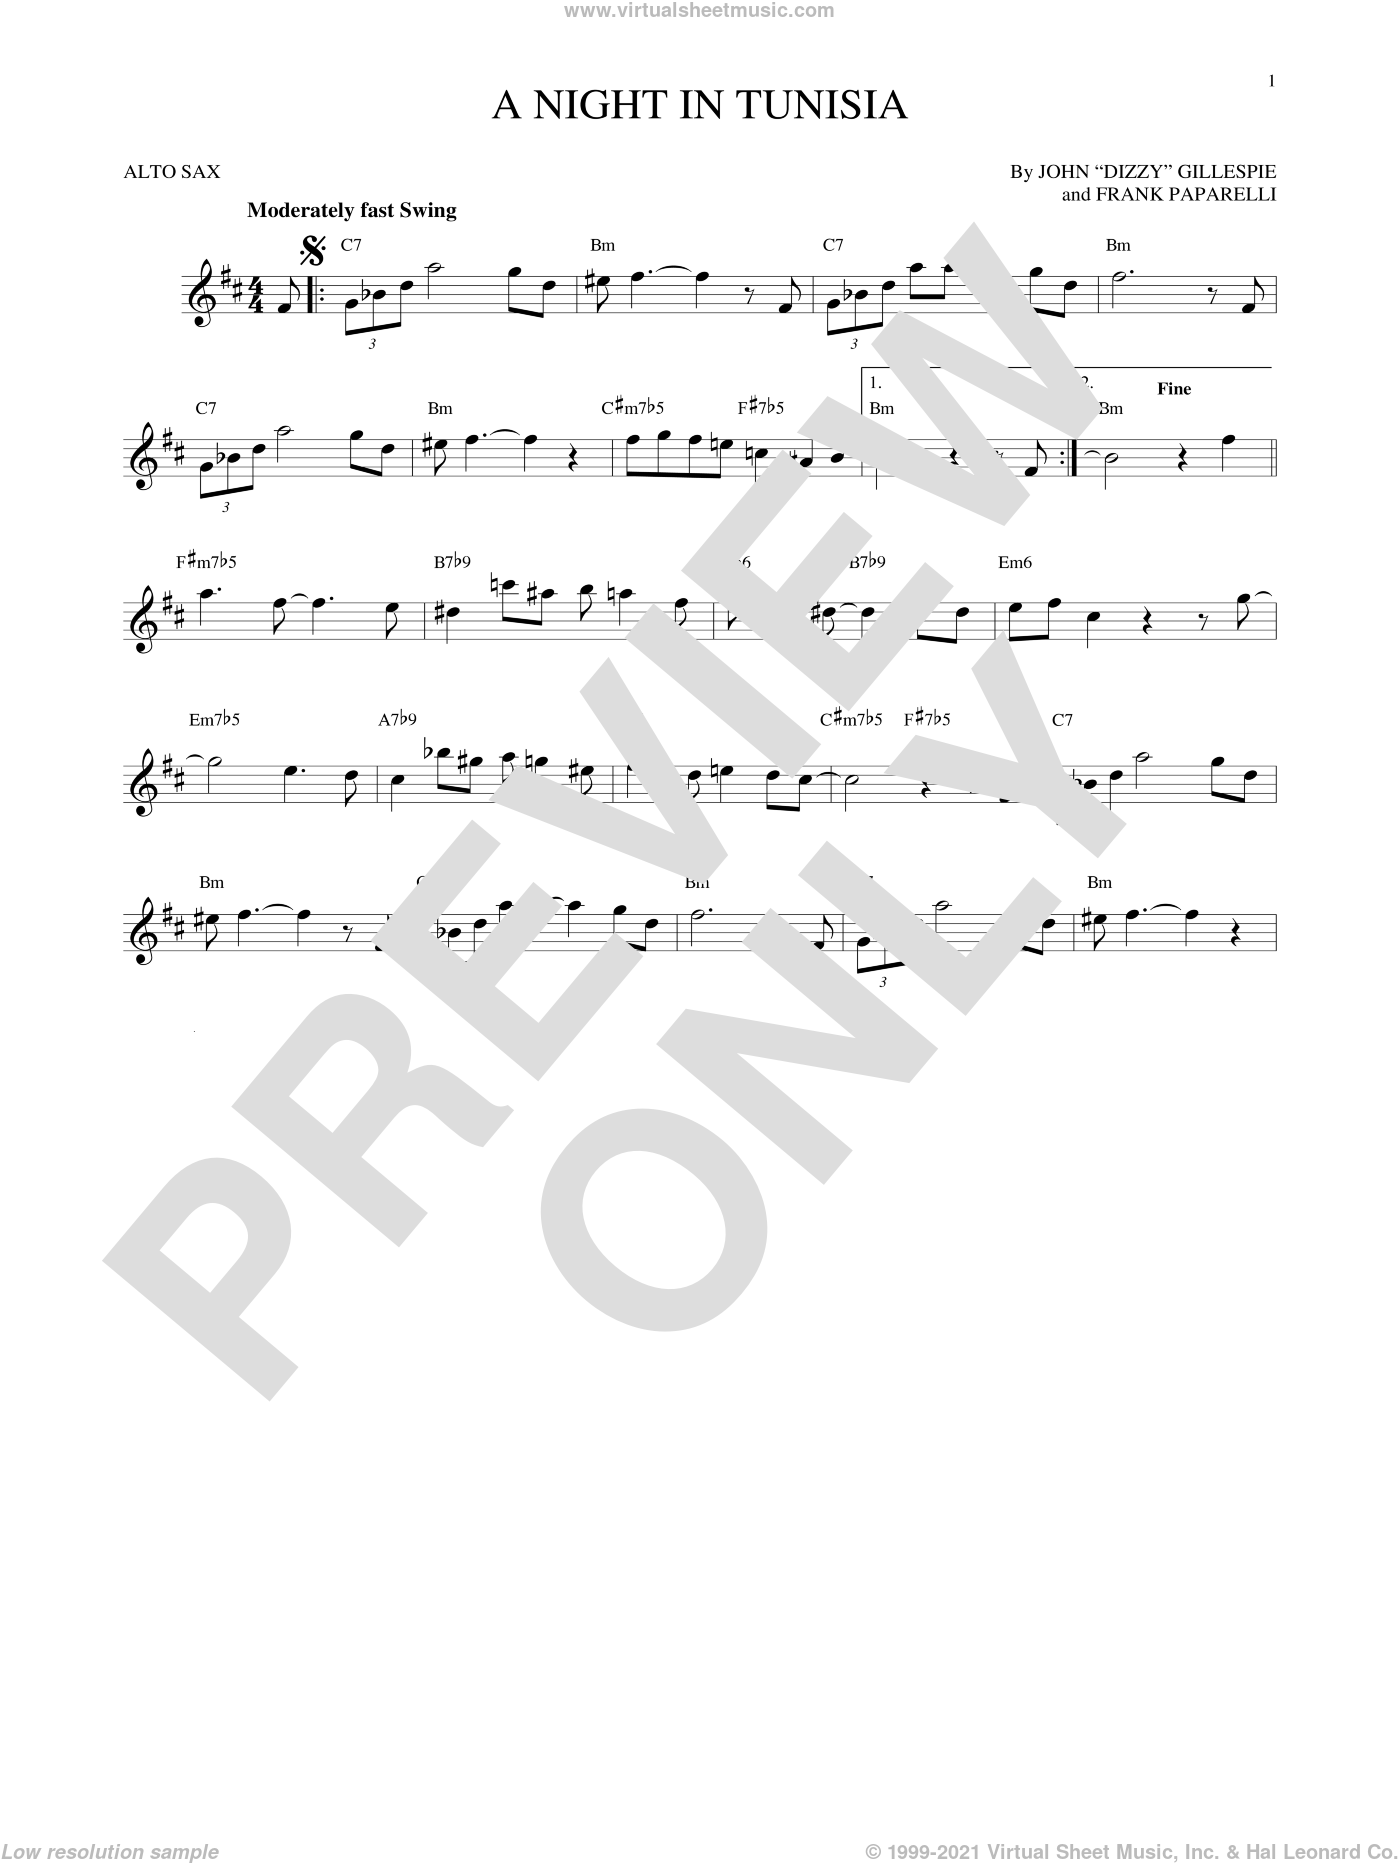 A Night In Tunisia sheet music for alto saxophone solo by Dizzy Gillespie and Frank Paparelli, intermediate skill level